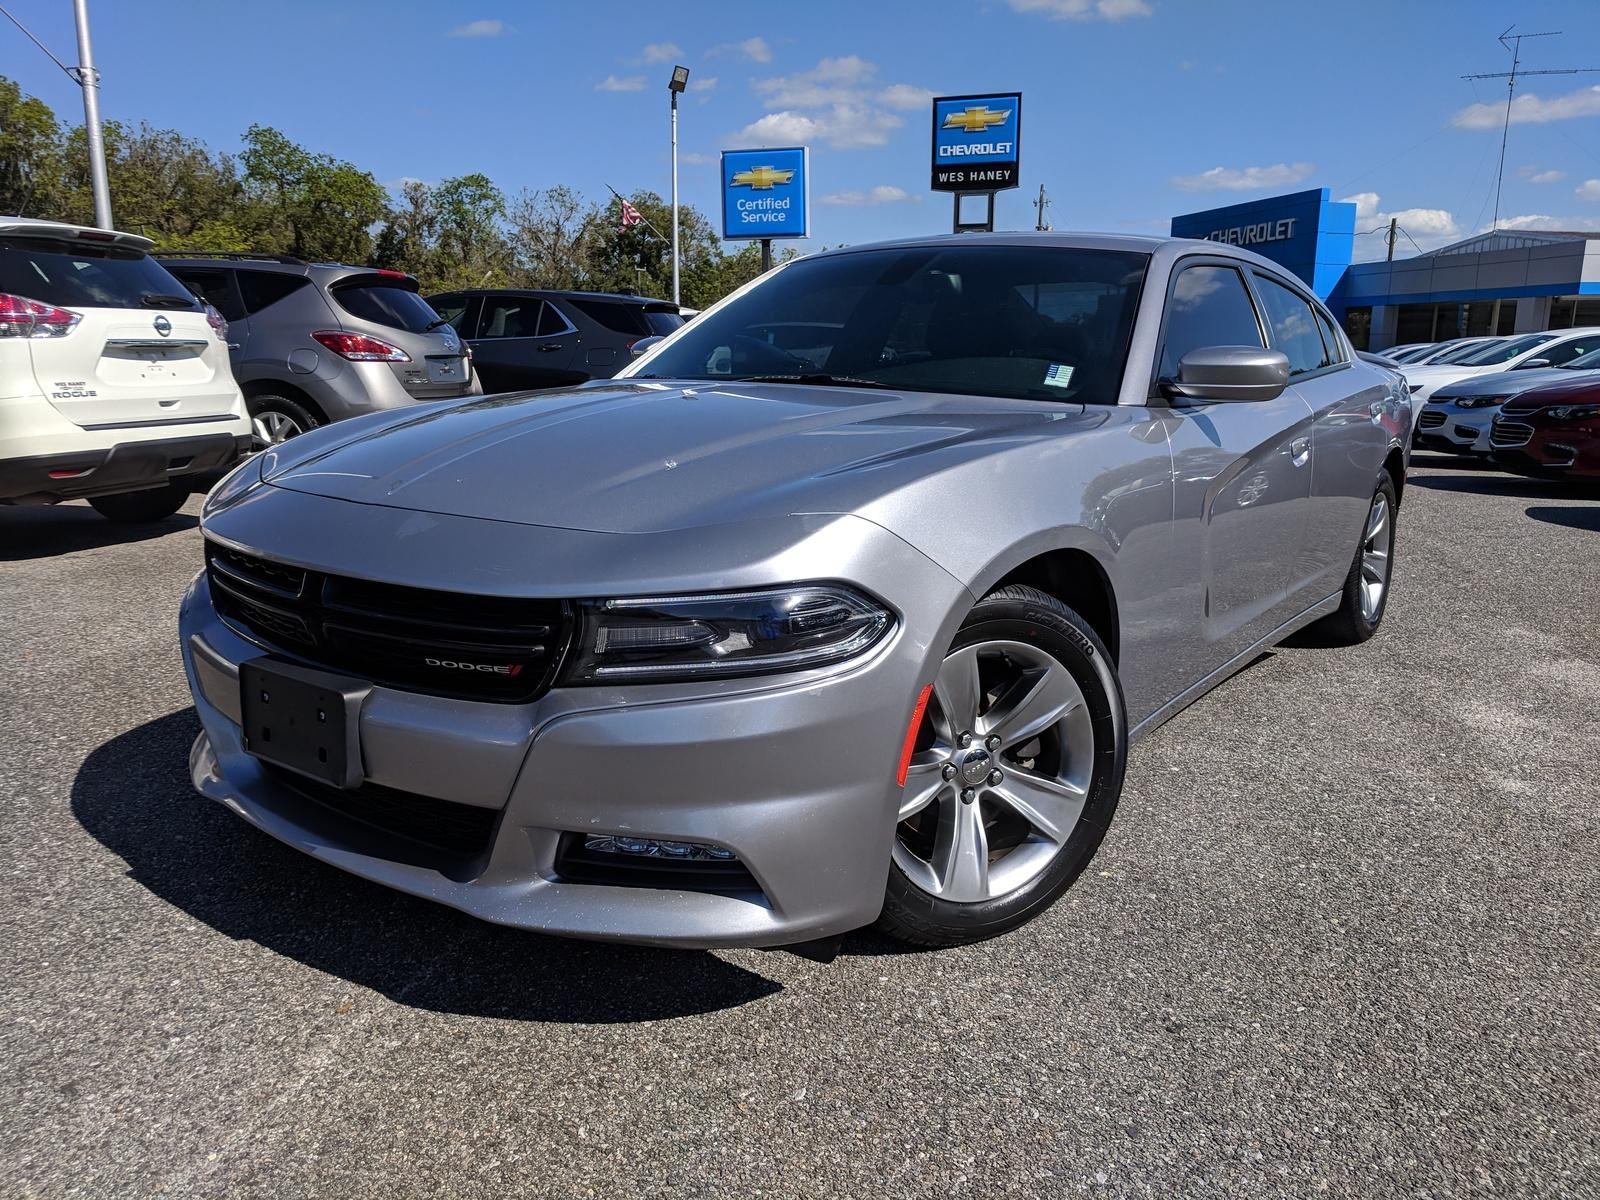 Used Dodge Charger for Sale New Live Oak Used Dodge Charger Vehicles for Sale